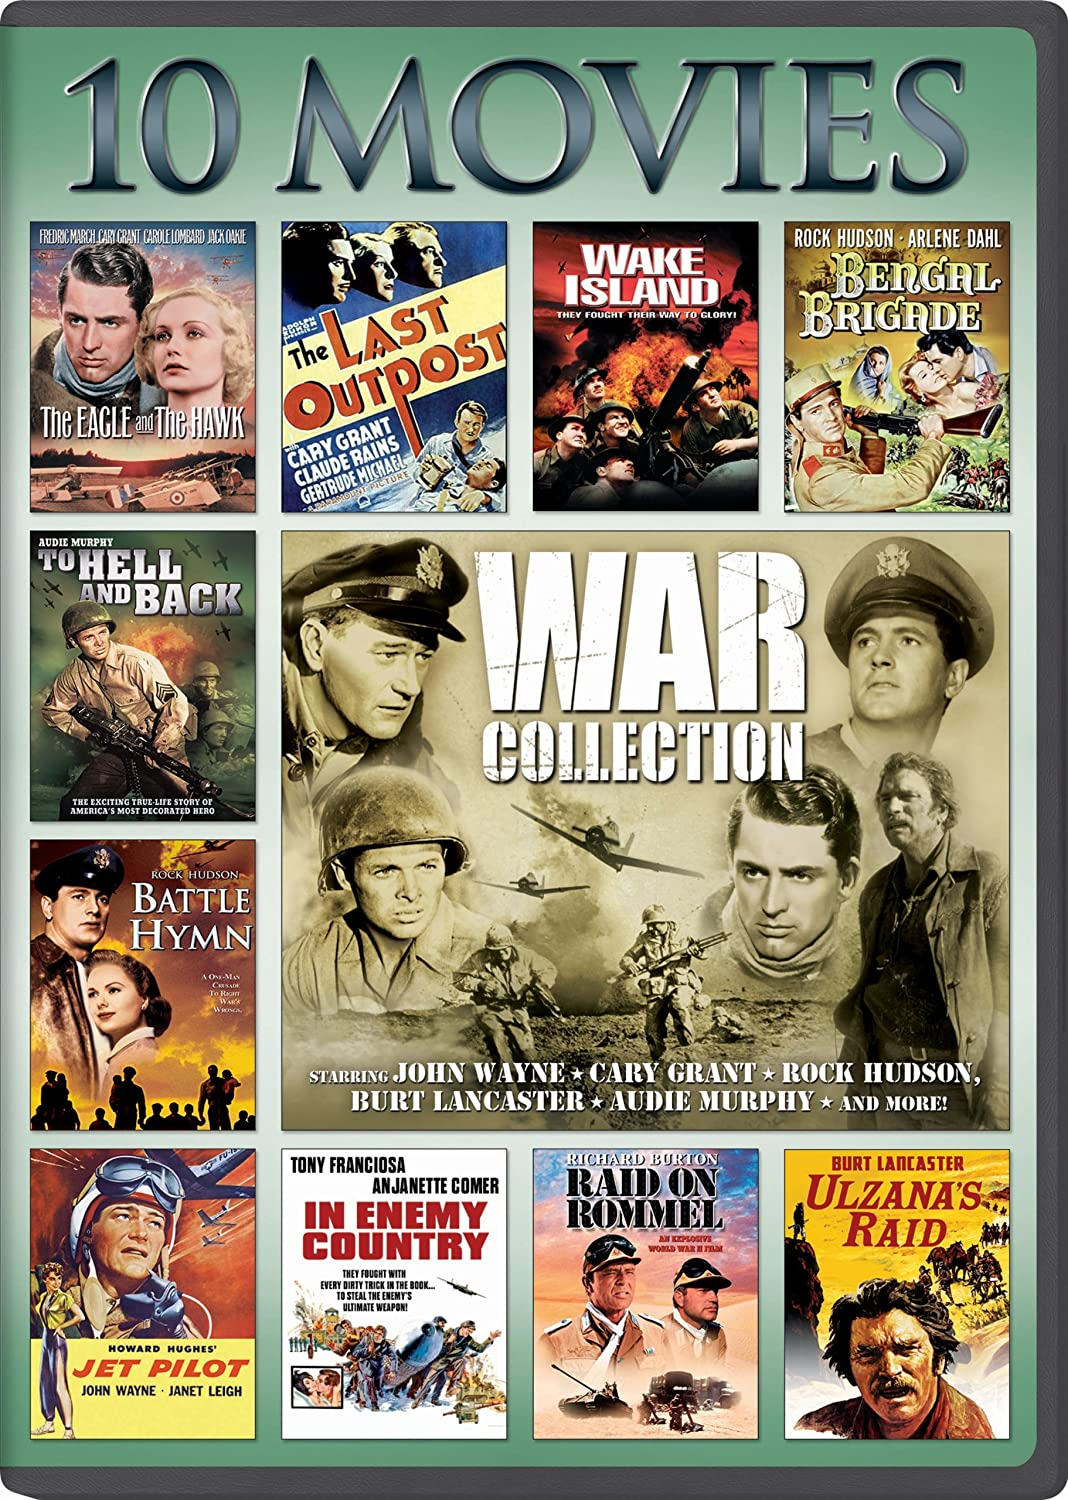 War, 10-Movie Collection: The Eagle and The Hawk / The Last Outpost / Bengal Brigad / Jet Pilot / Ulzana's Raid / To Hell and Back / In Enemy Country / Raid on Rommel / Battle Hymn / Wake Island(Packaging may vary)